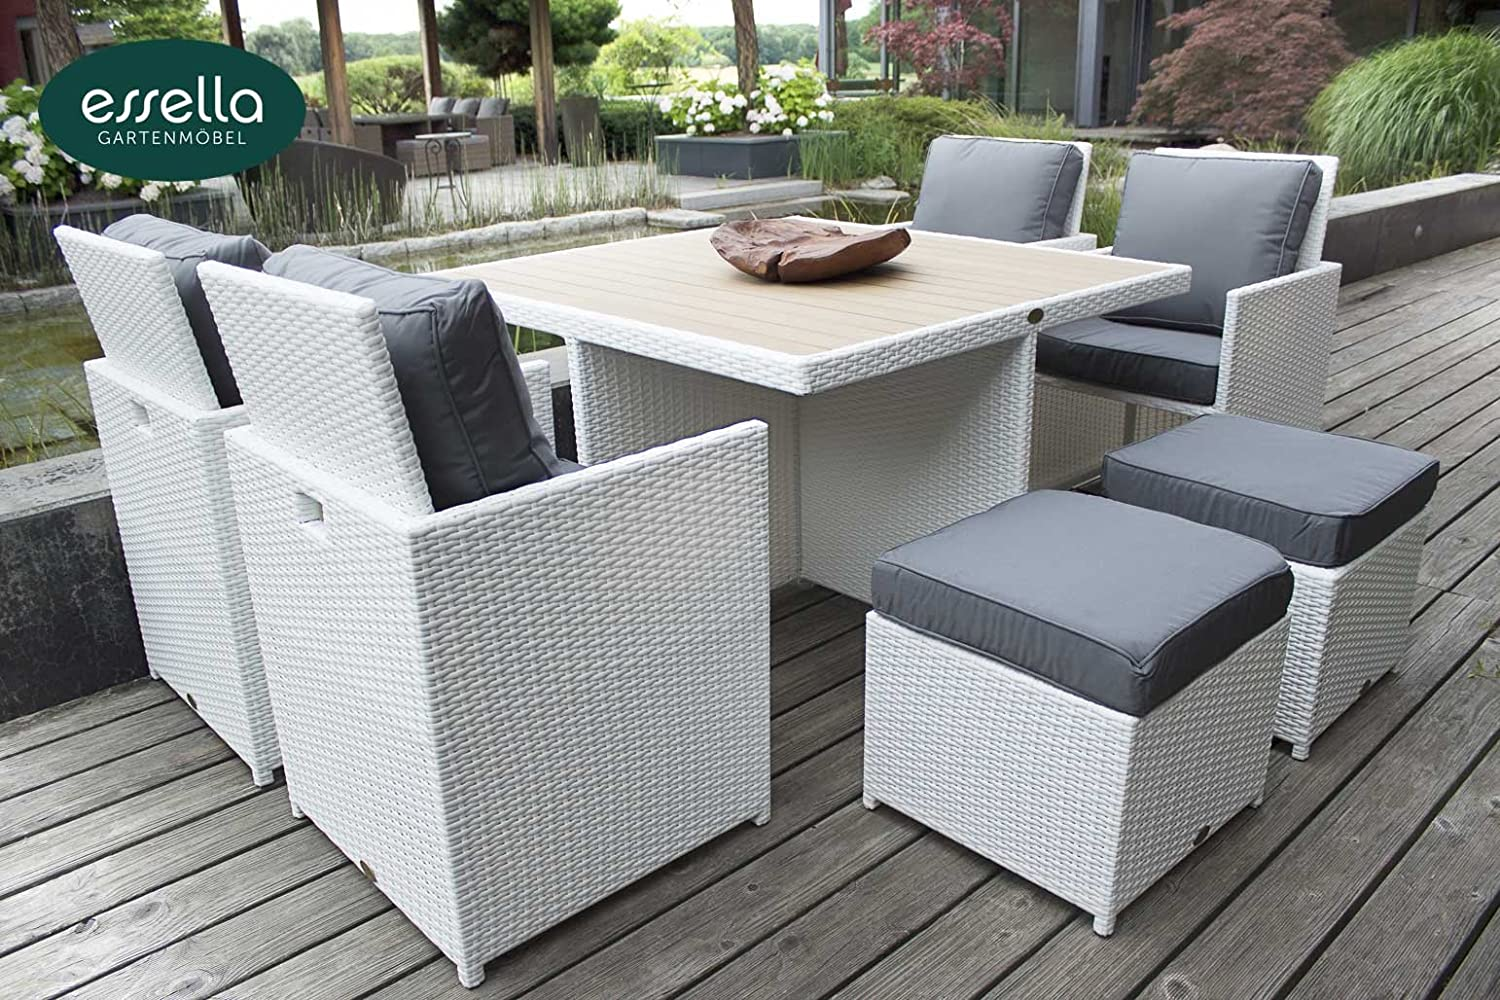 polyrattan sitzgruppe vienna 4 personen polywood flachgeflecht weiss gartenm bel. Black Bedroom Furniture Sets. Home Design Ideas